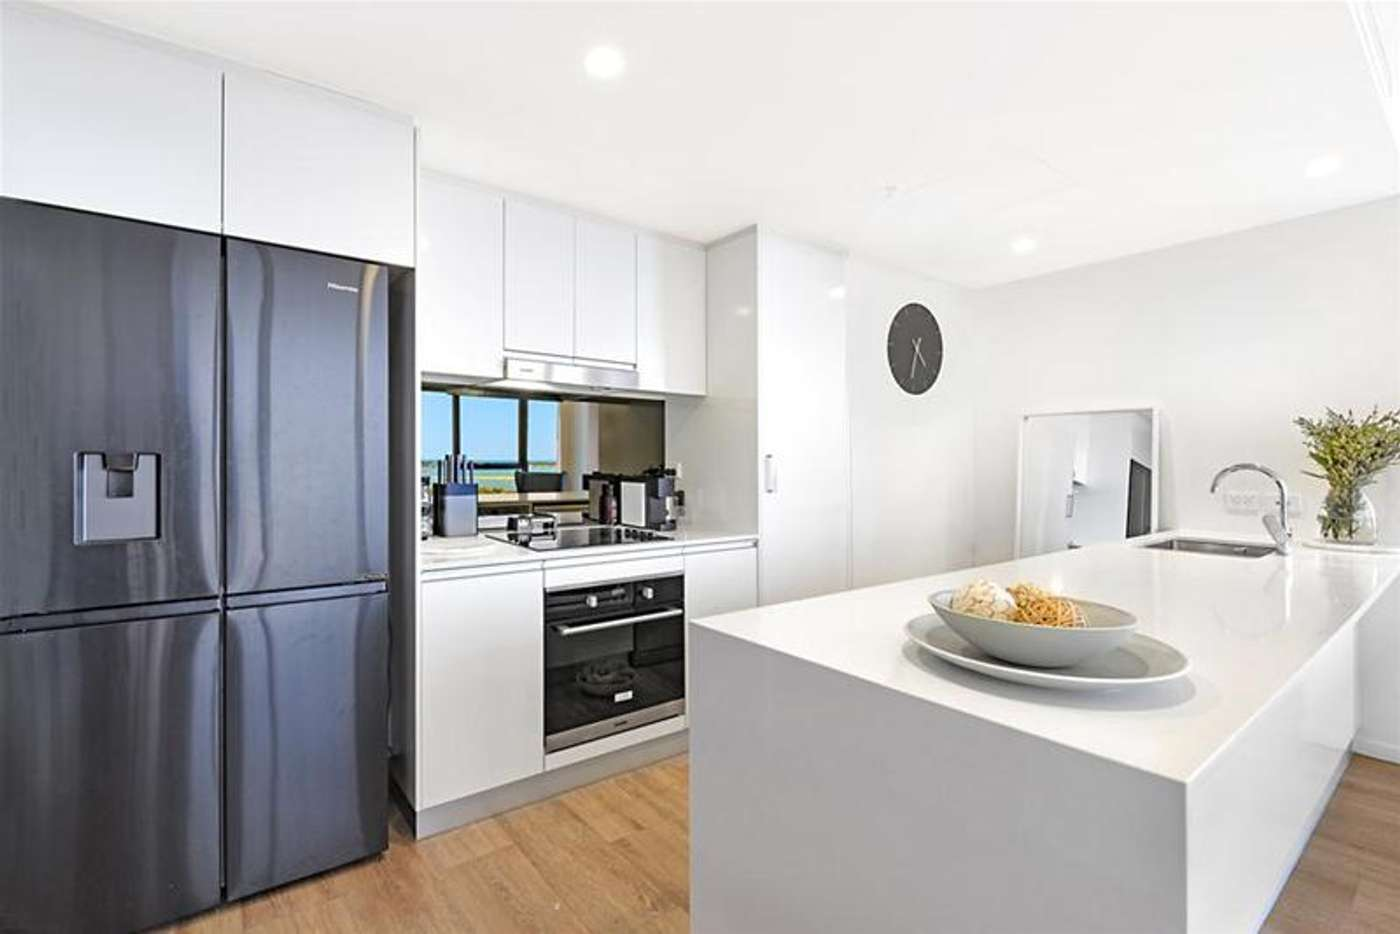 Fifth view of Homely apartment listing, 901/139 Scarborough Street, Southport QLD 4215